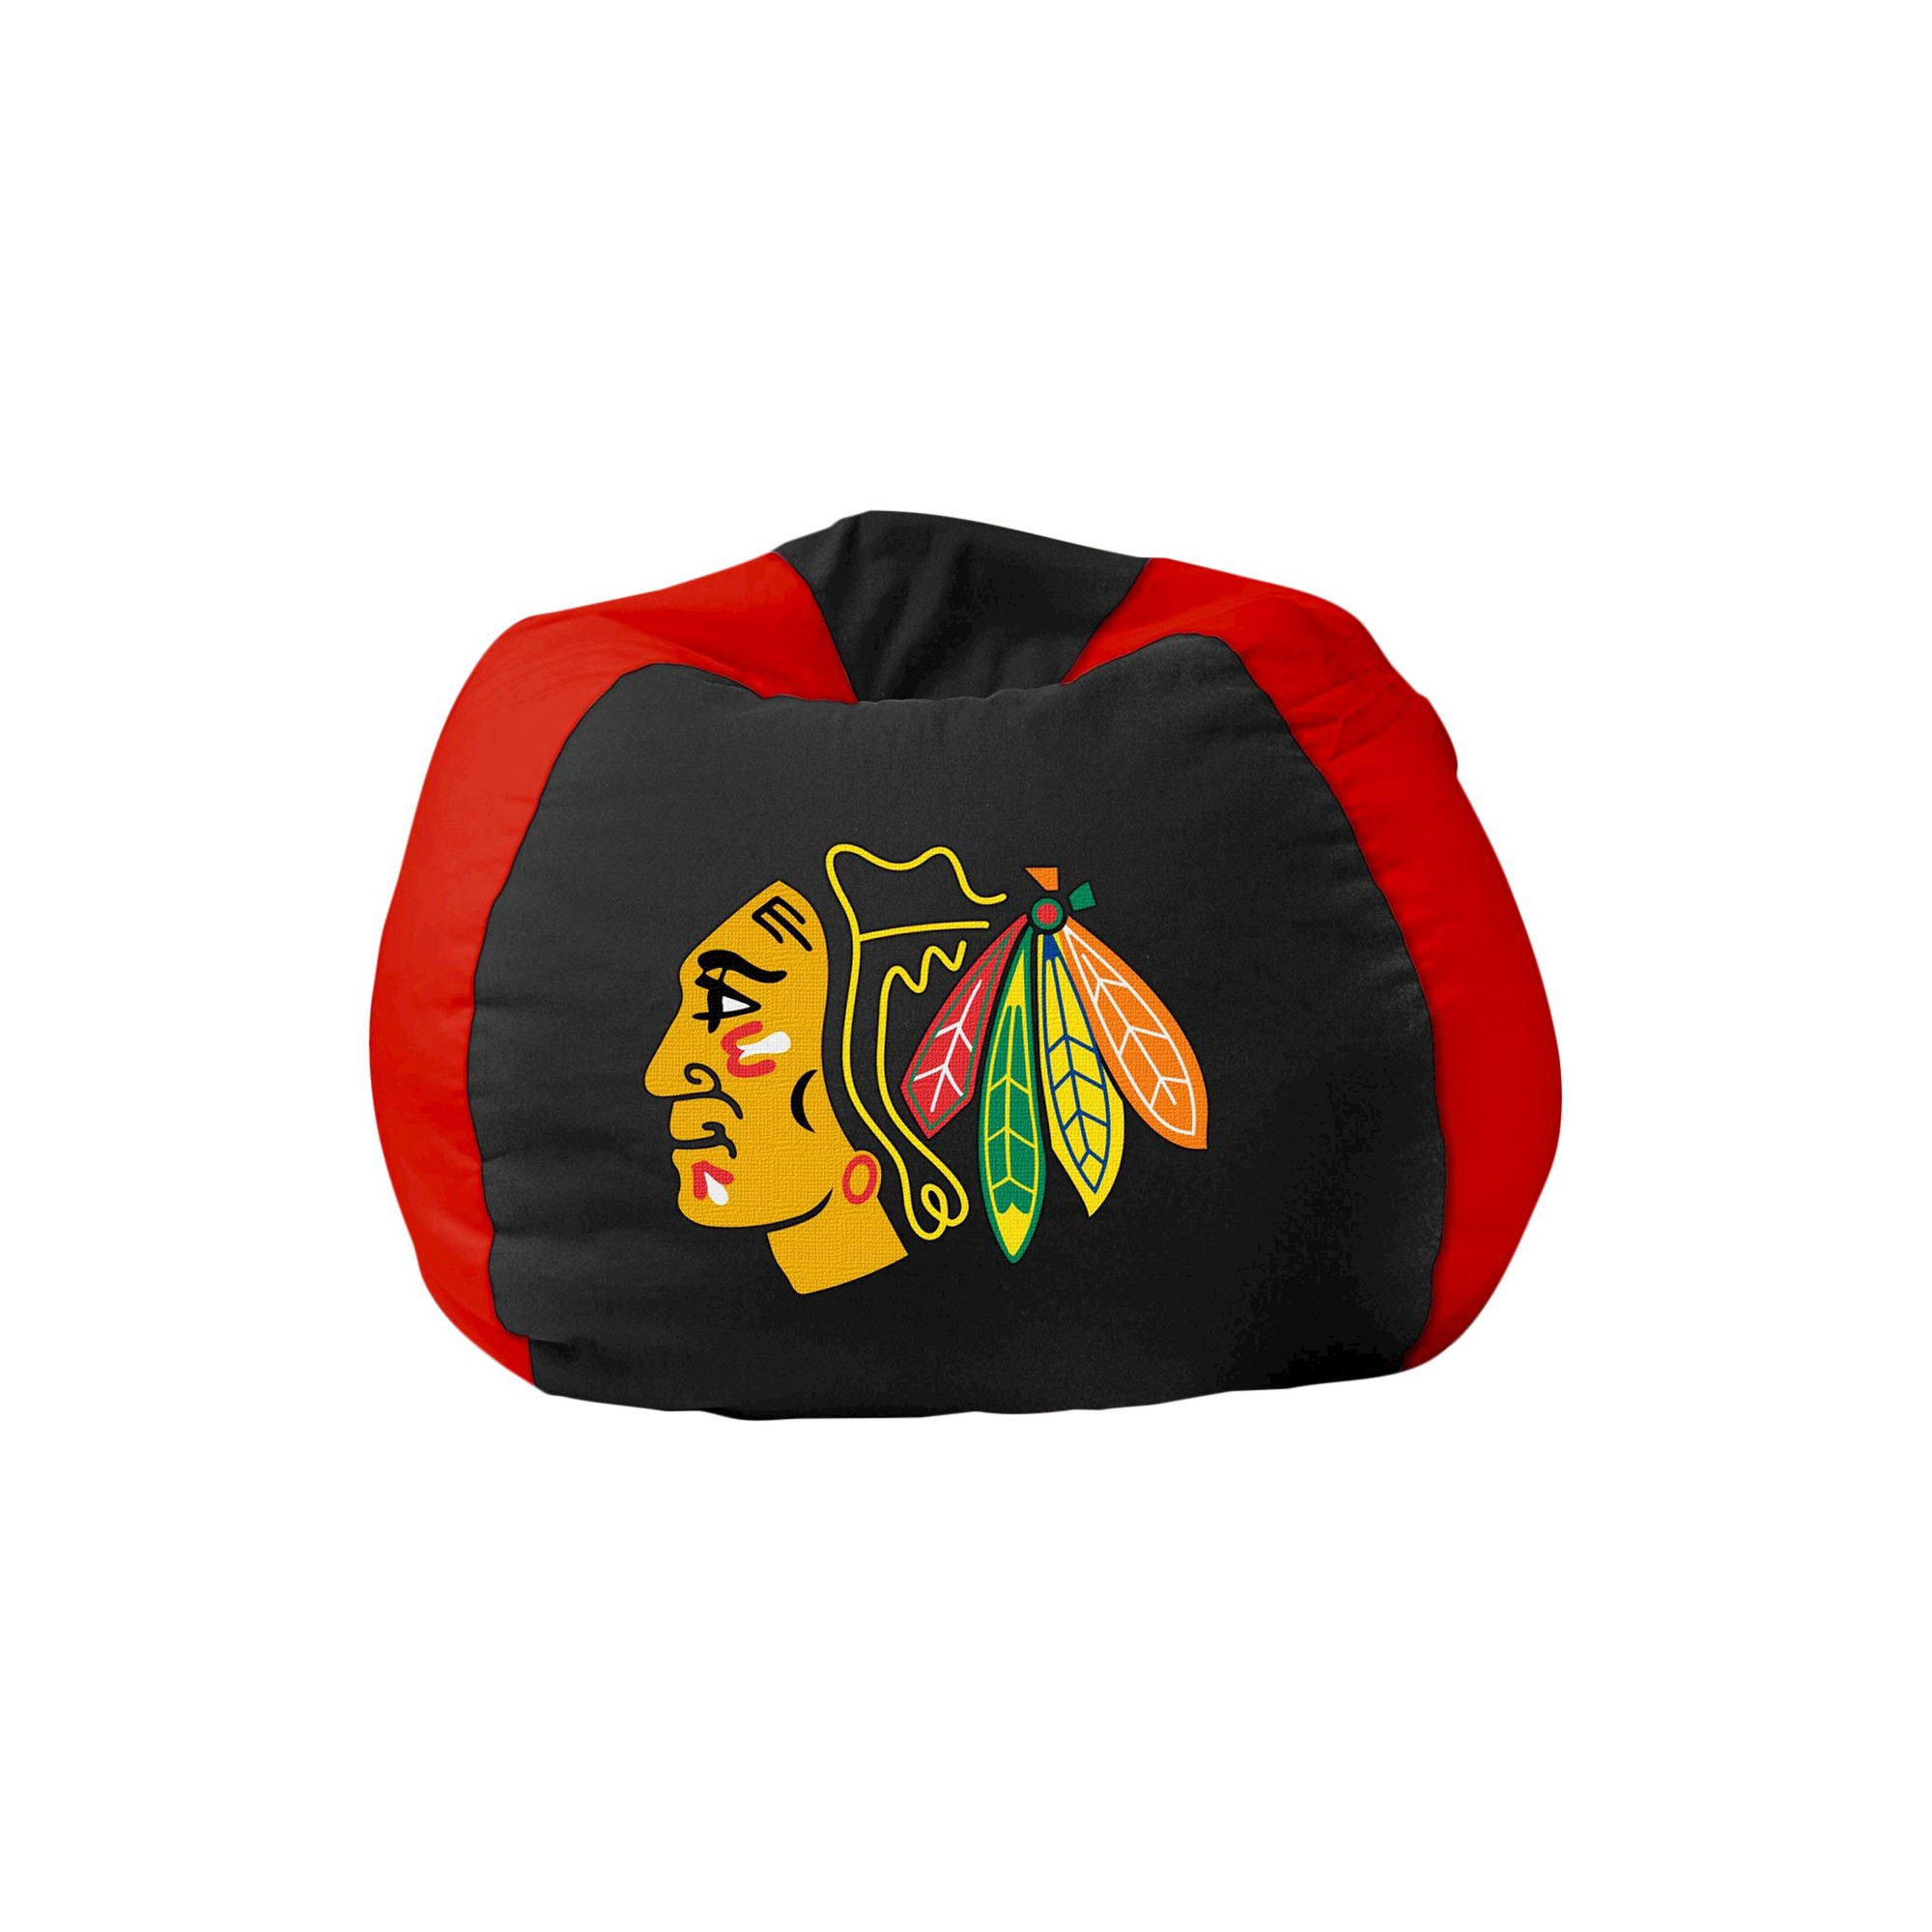 Merveilleux Chicago Blackhawks Northwest Bean Bag Chair